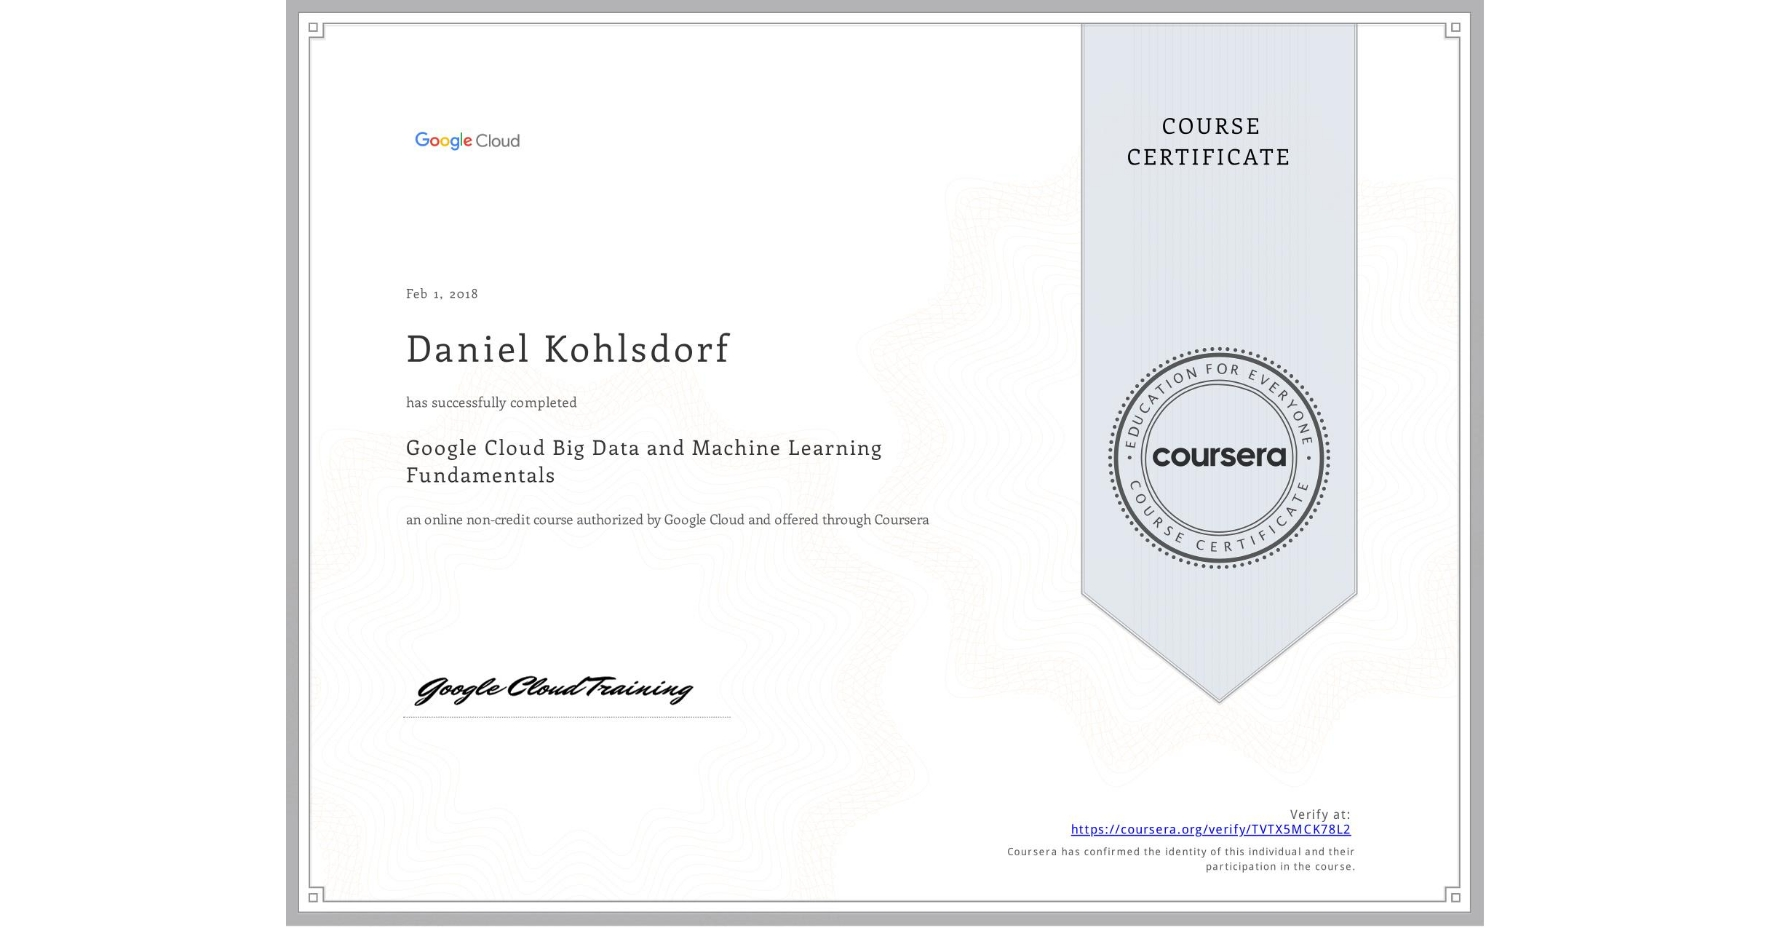 View certificate for Daniel Kohlsdorf, Google Cloud Big Data and Machine Learning Fundamentals, an online non-credit course authorized by Google Cloud and offered through Coursera